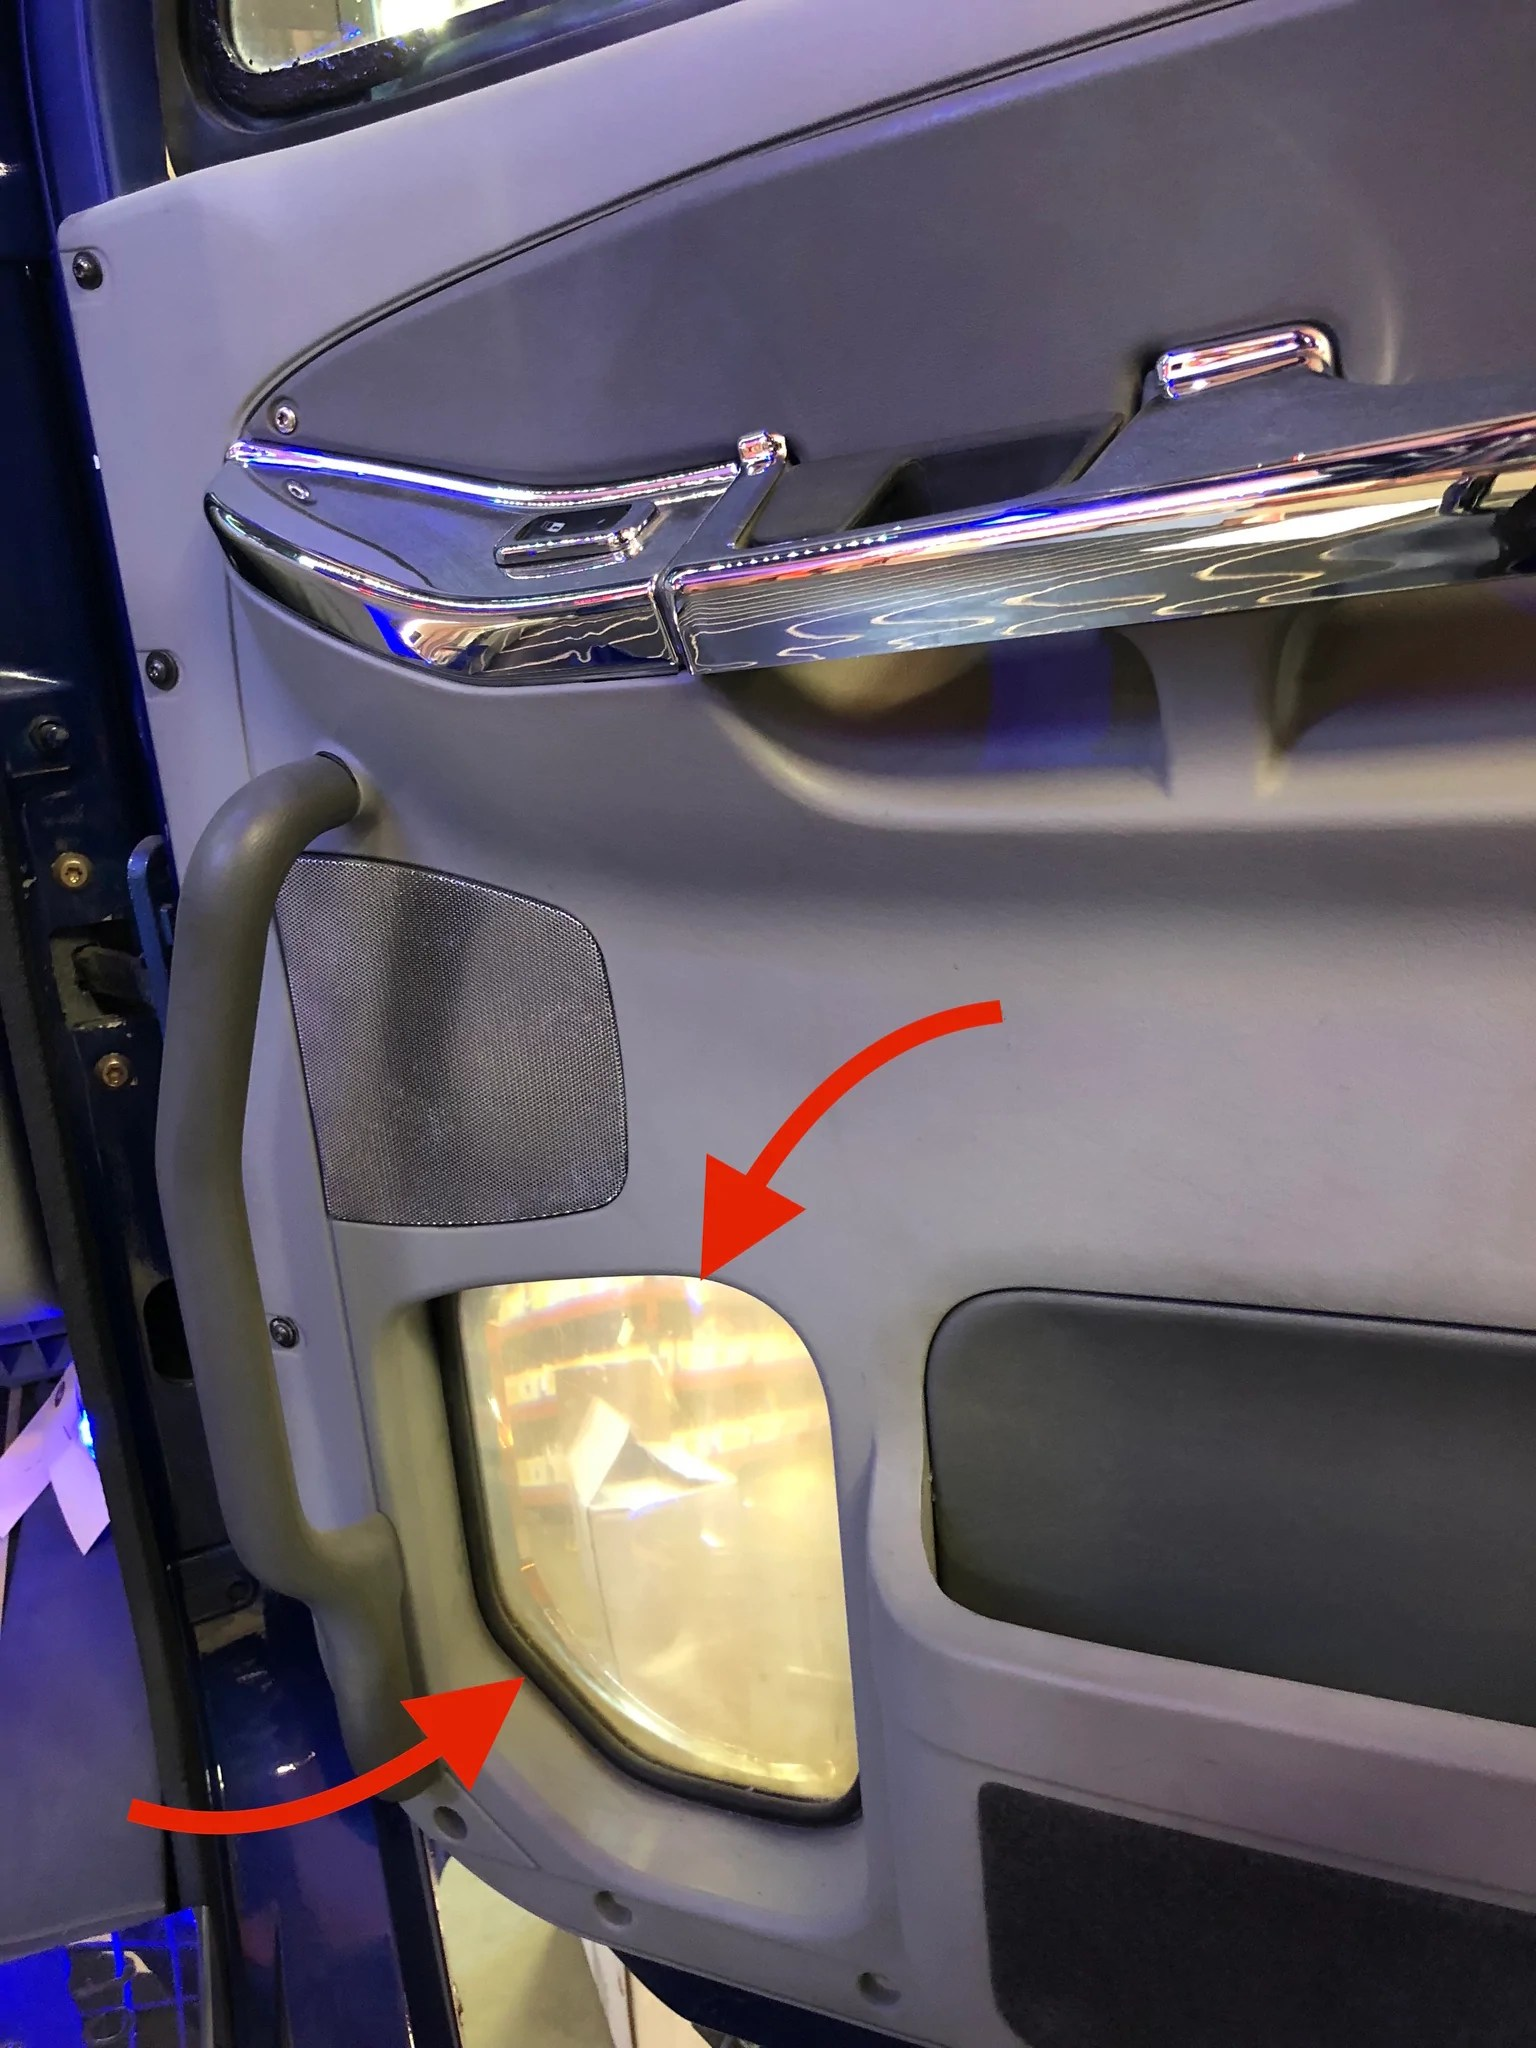 hight resolution of lower view window kit passenger side century columbia a18 48623 000 a18 48623 001